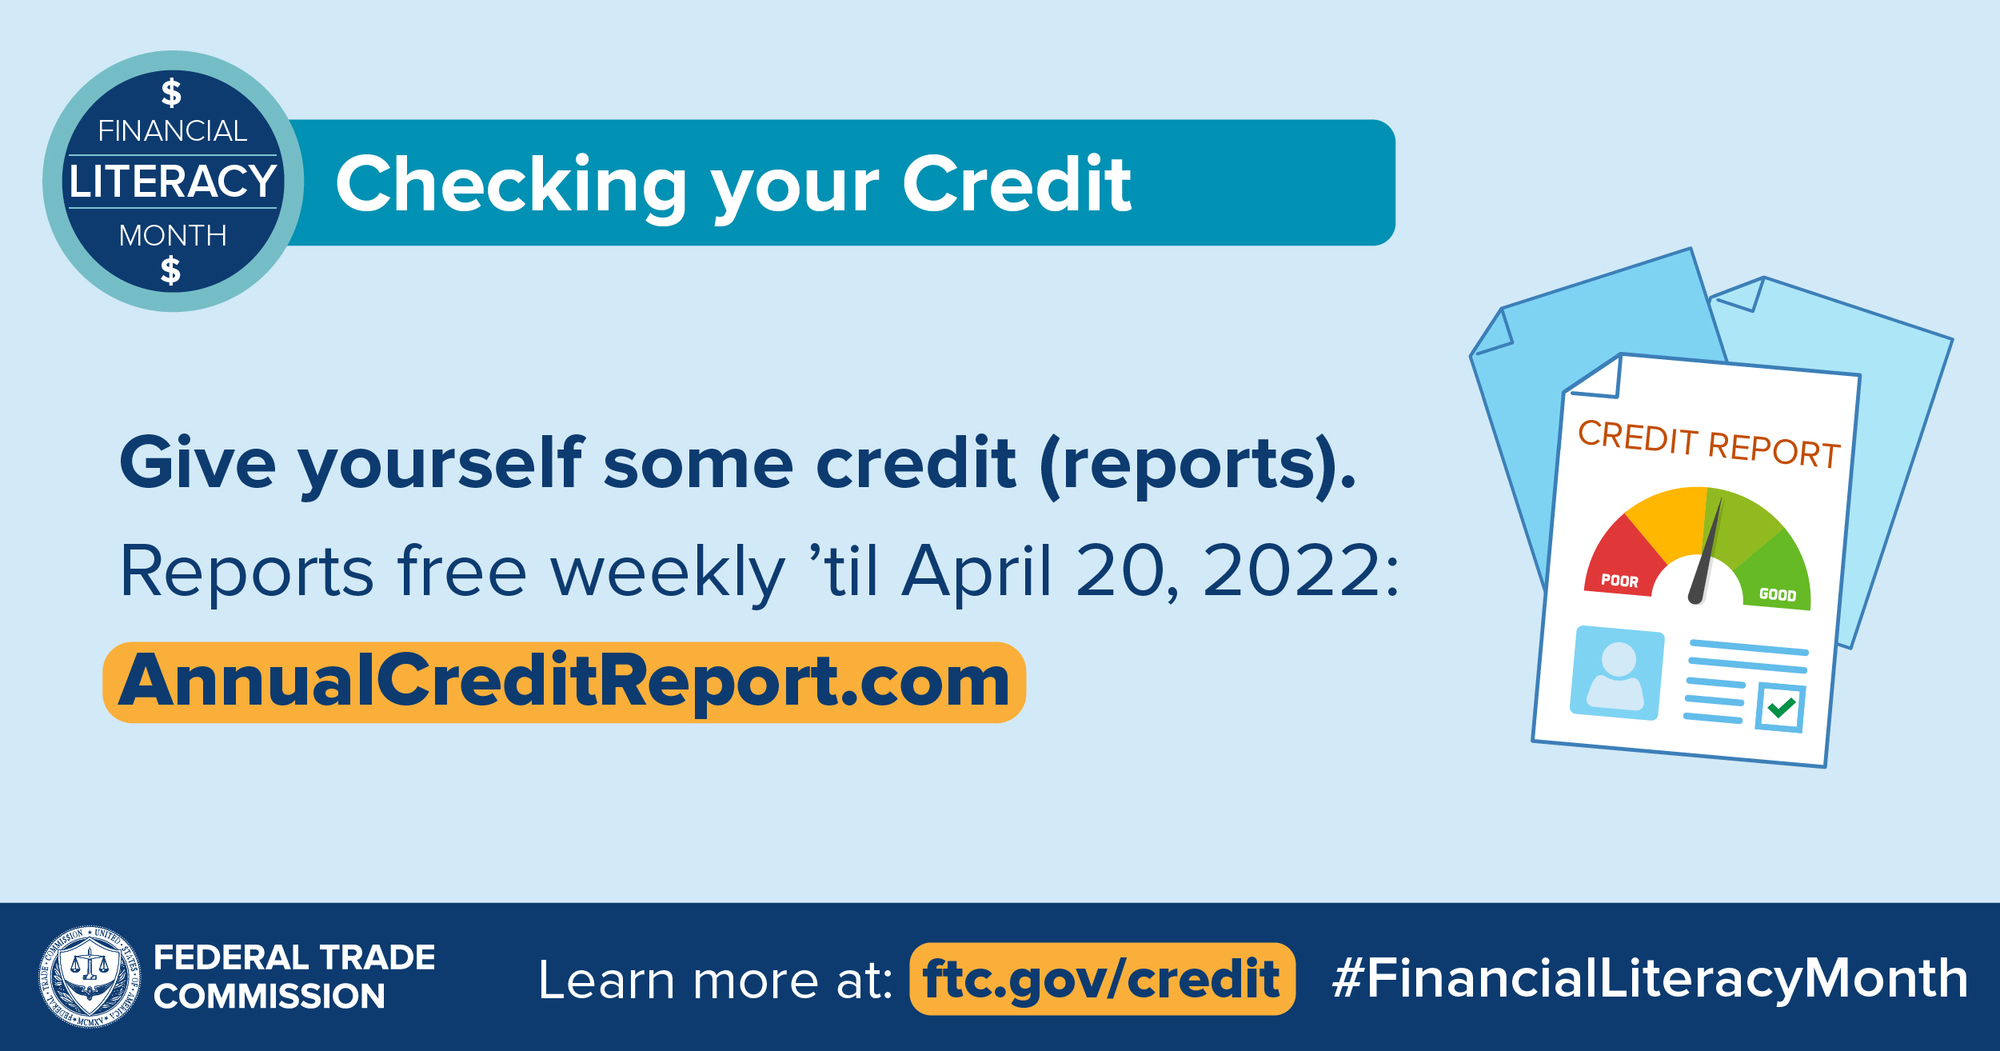 Financial Literacy Month: Checking your Credit